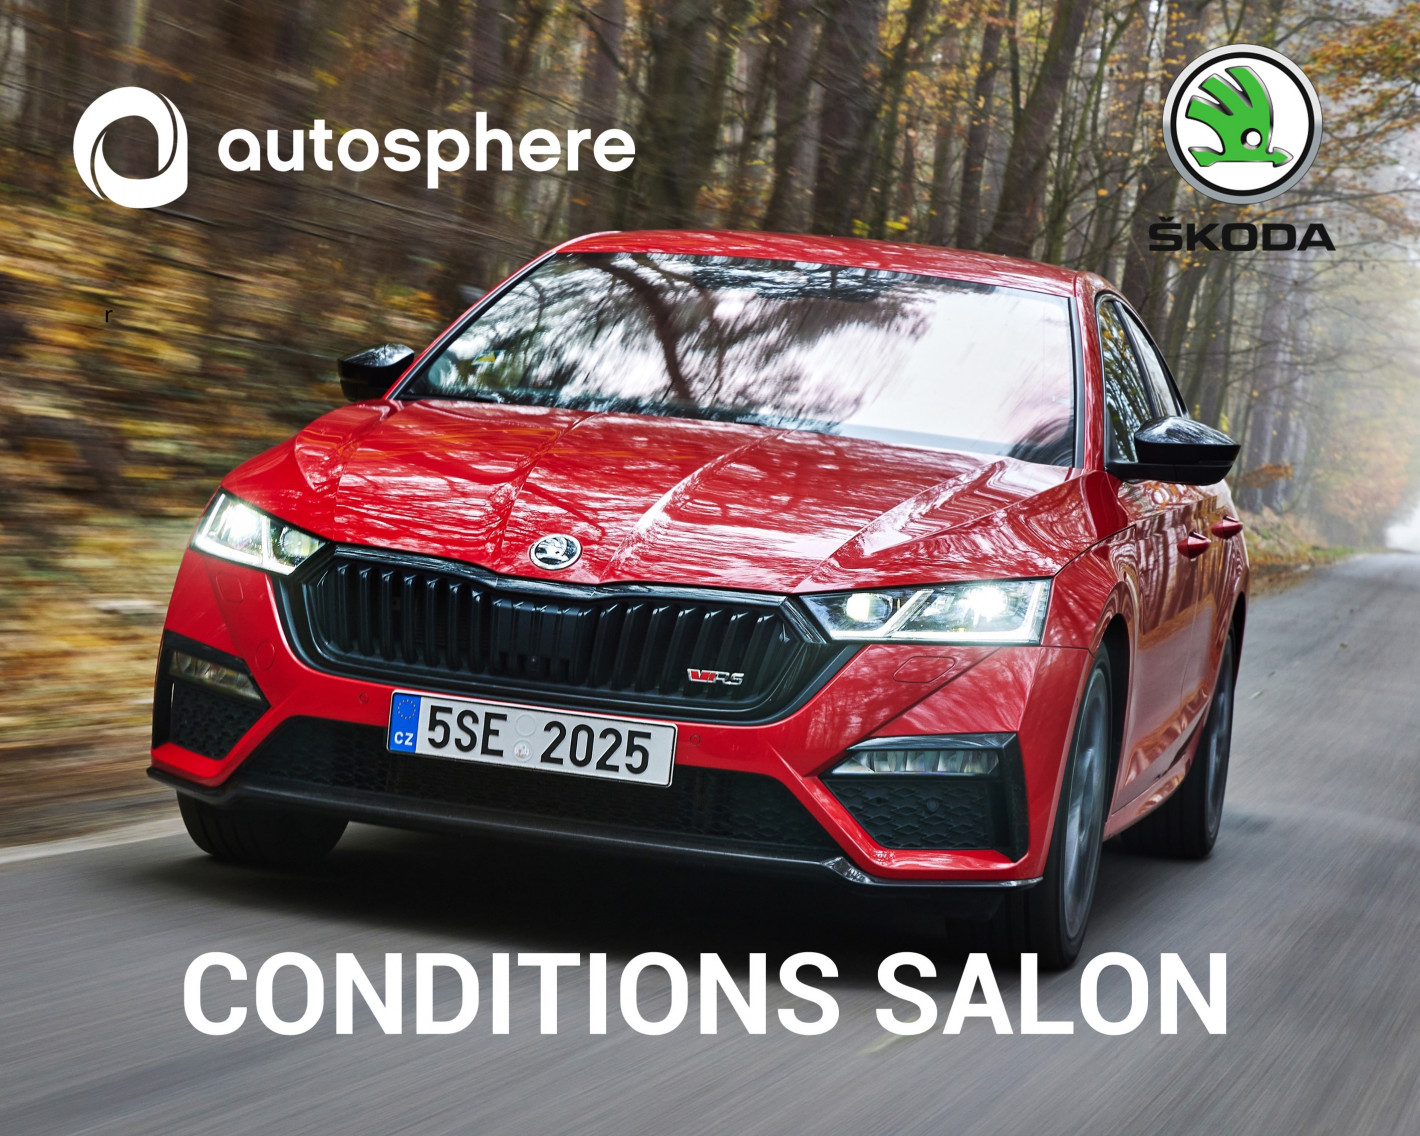 Conditions Salon SKODA SCHU